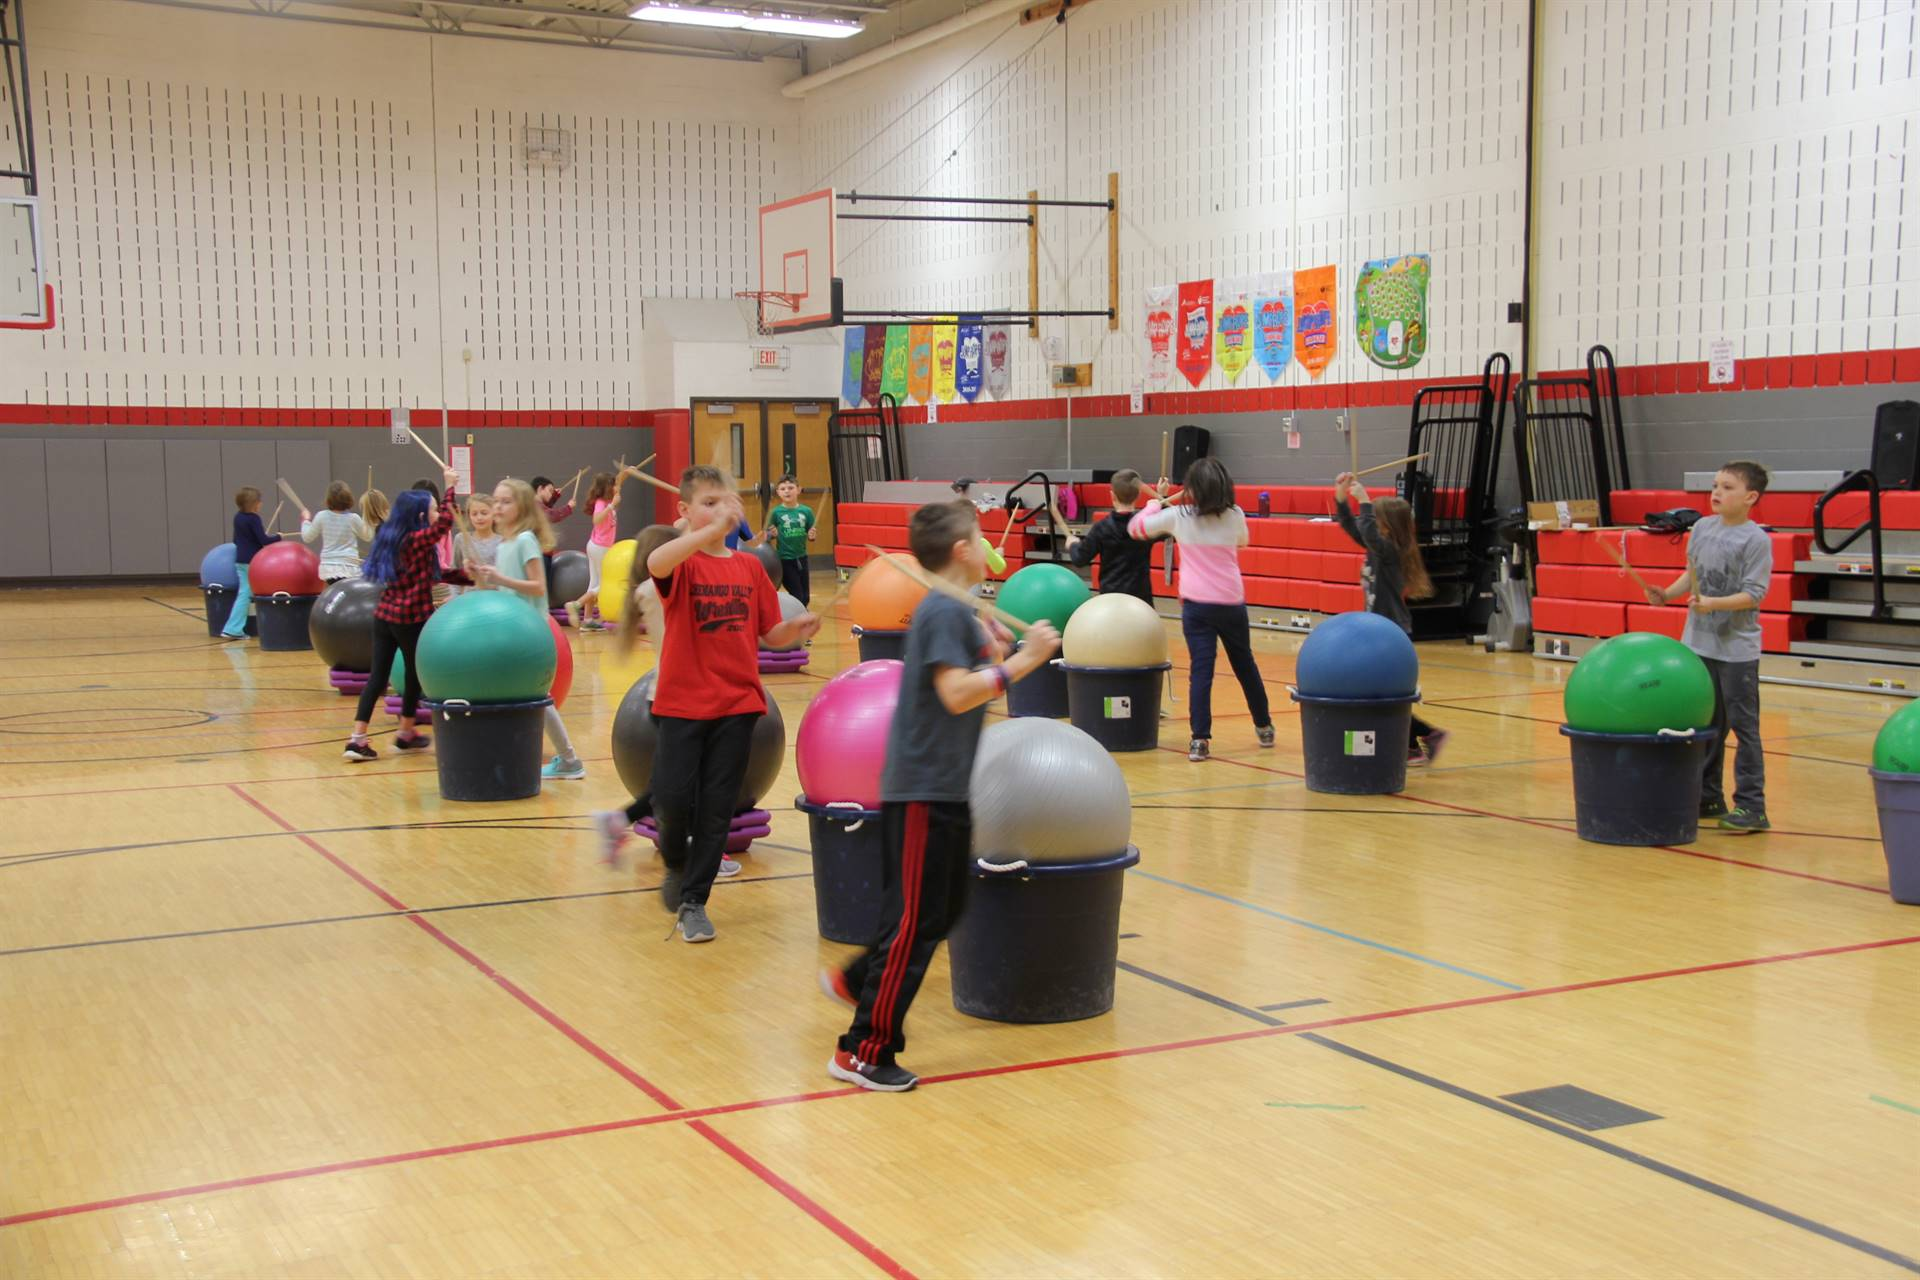 students walking around exercise balls holding drum sticks